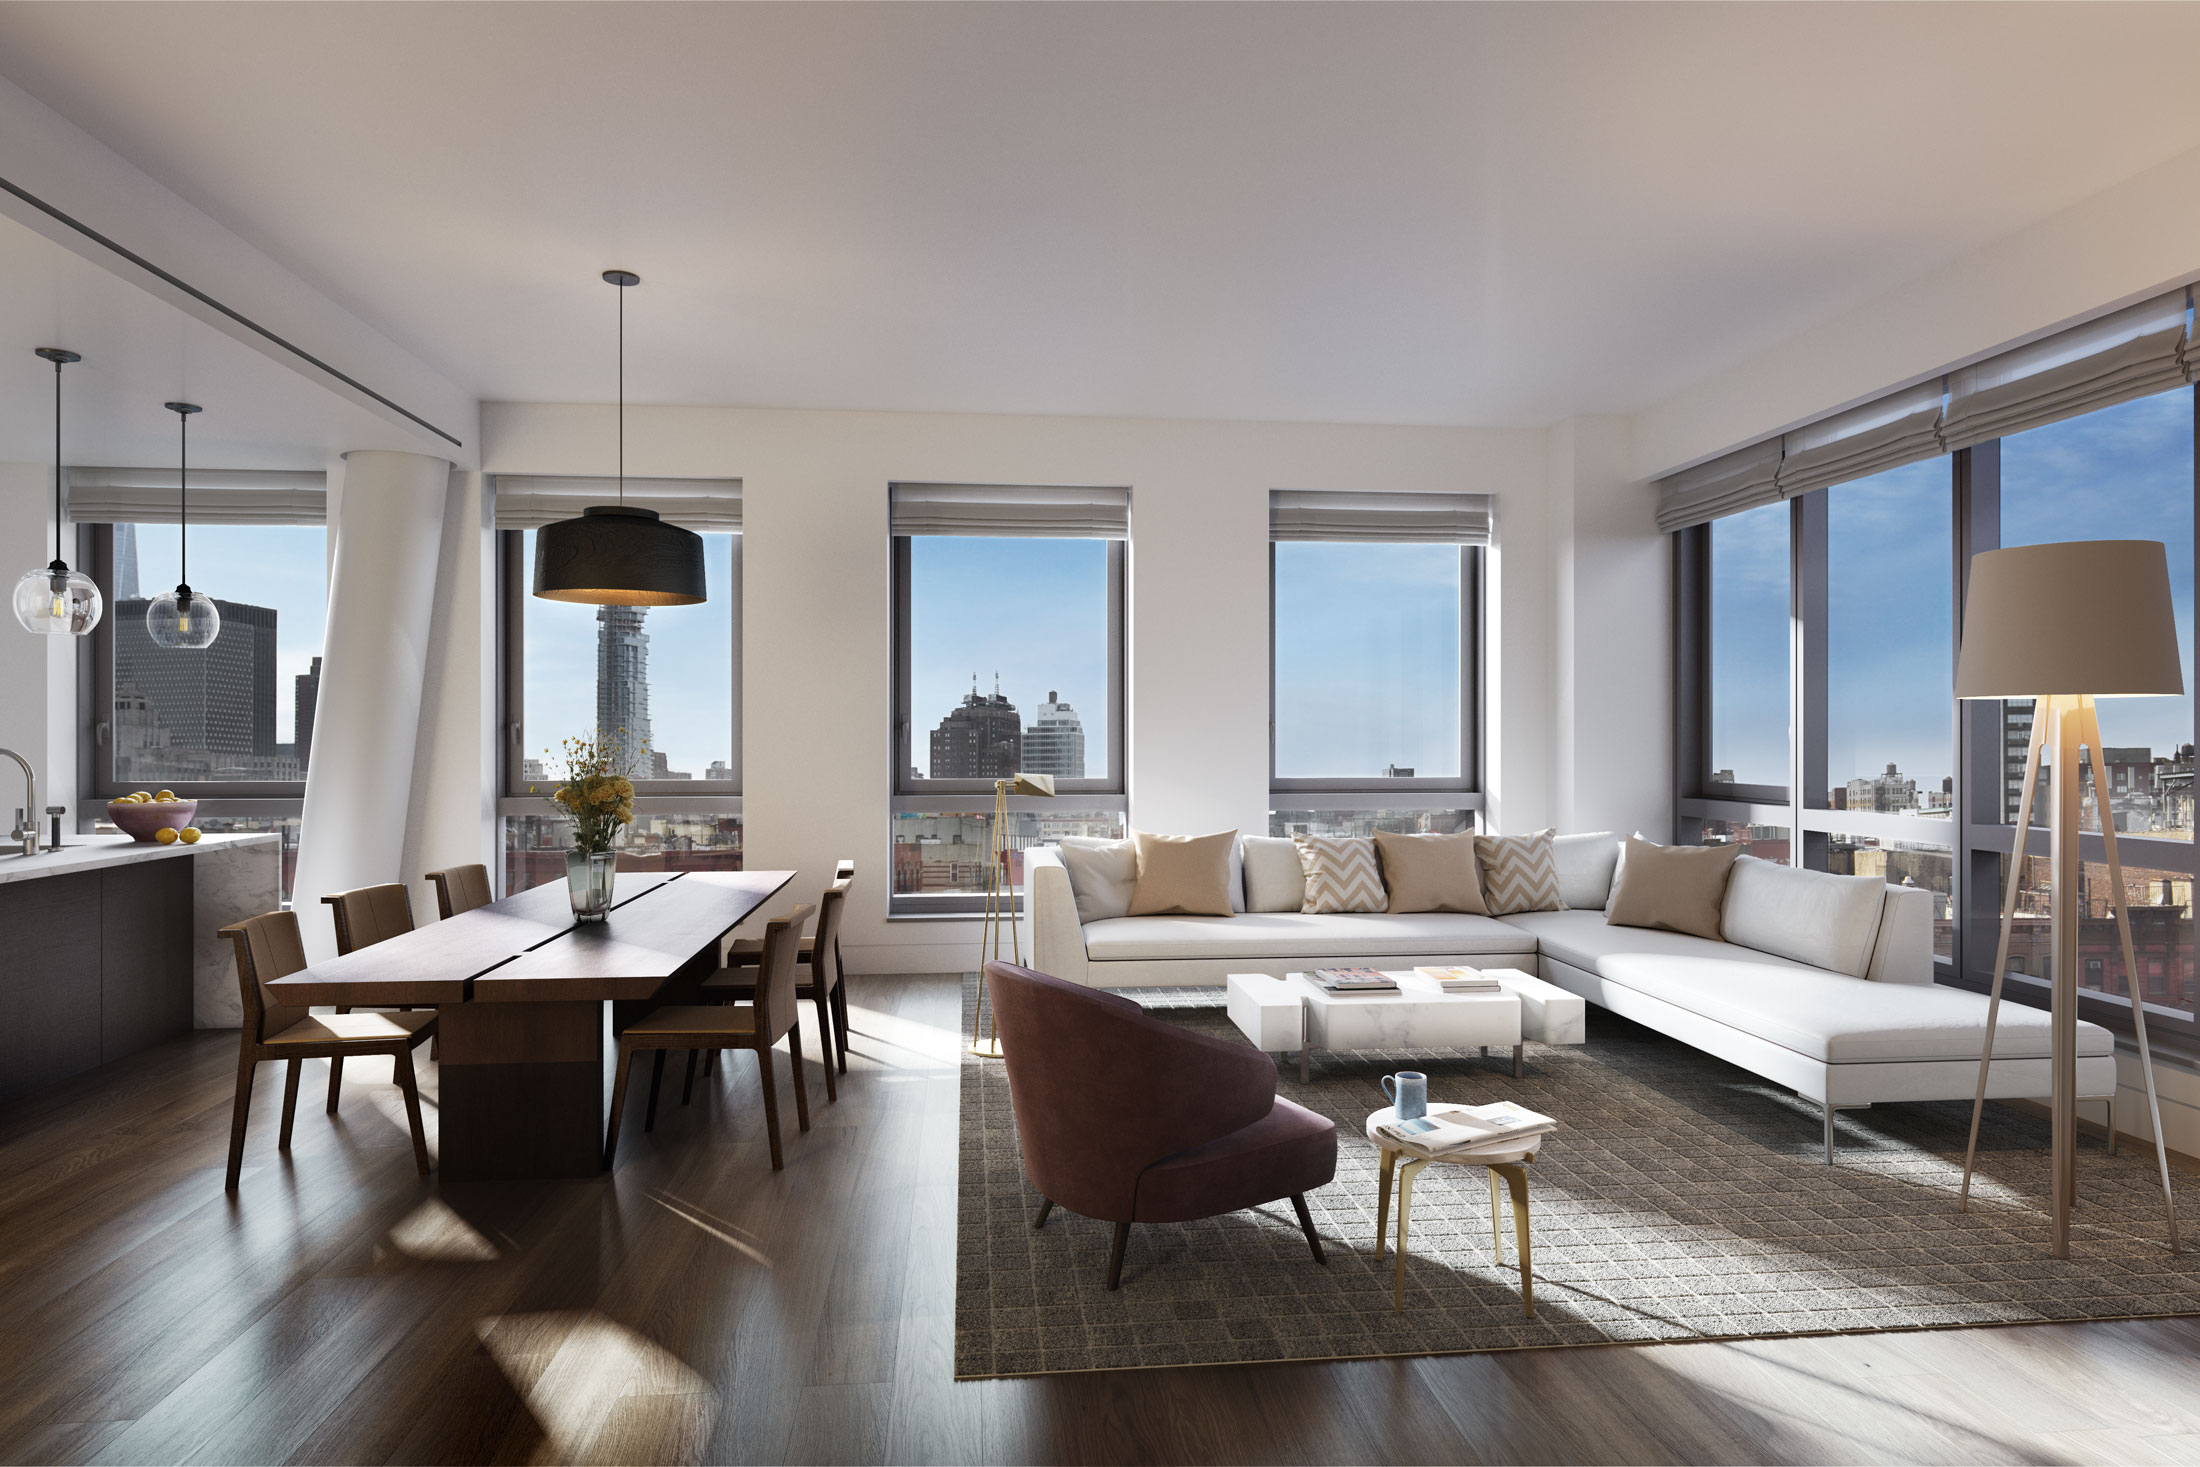 Architectural Rendering of the living room of the 242 Broome Street project located on the Lower East Side, New York City